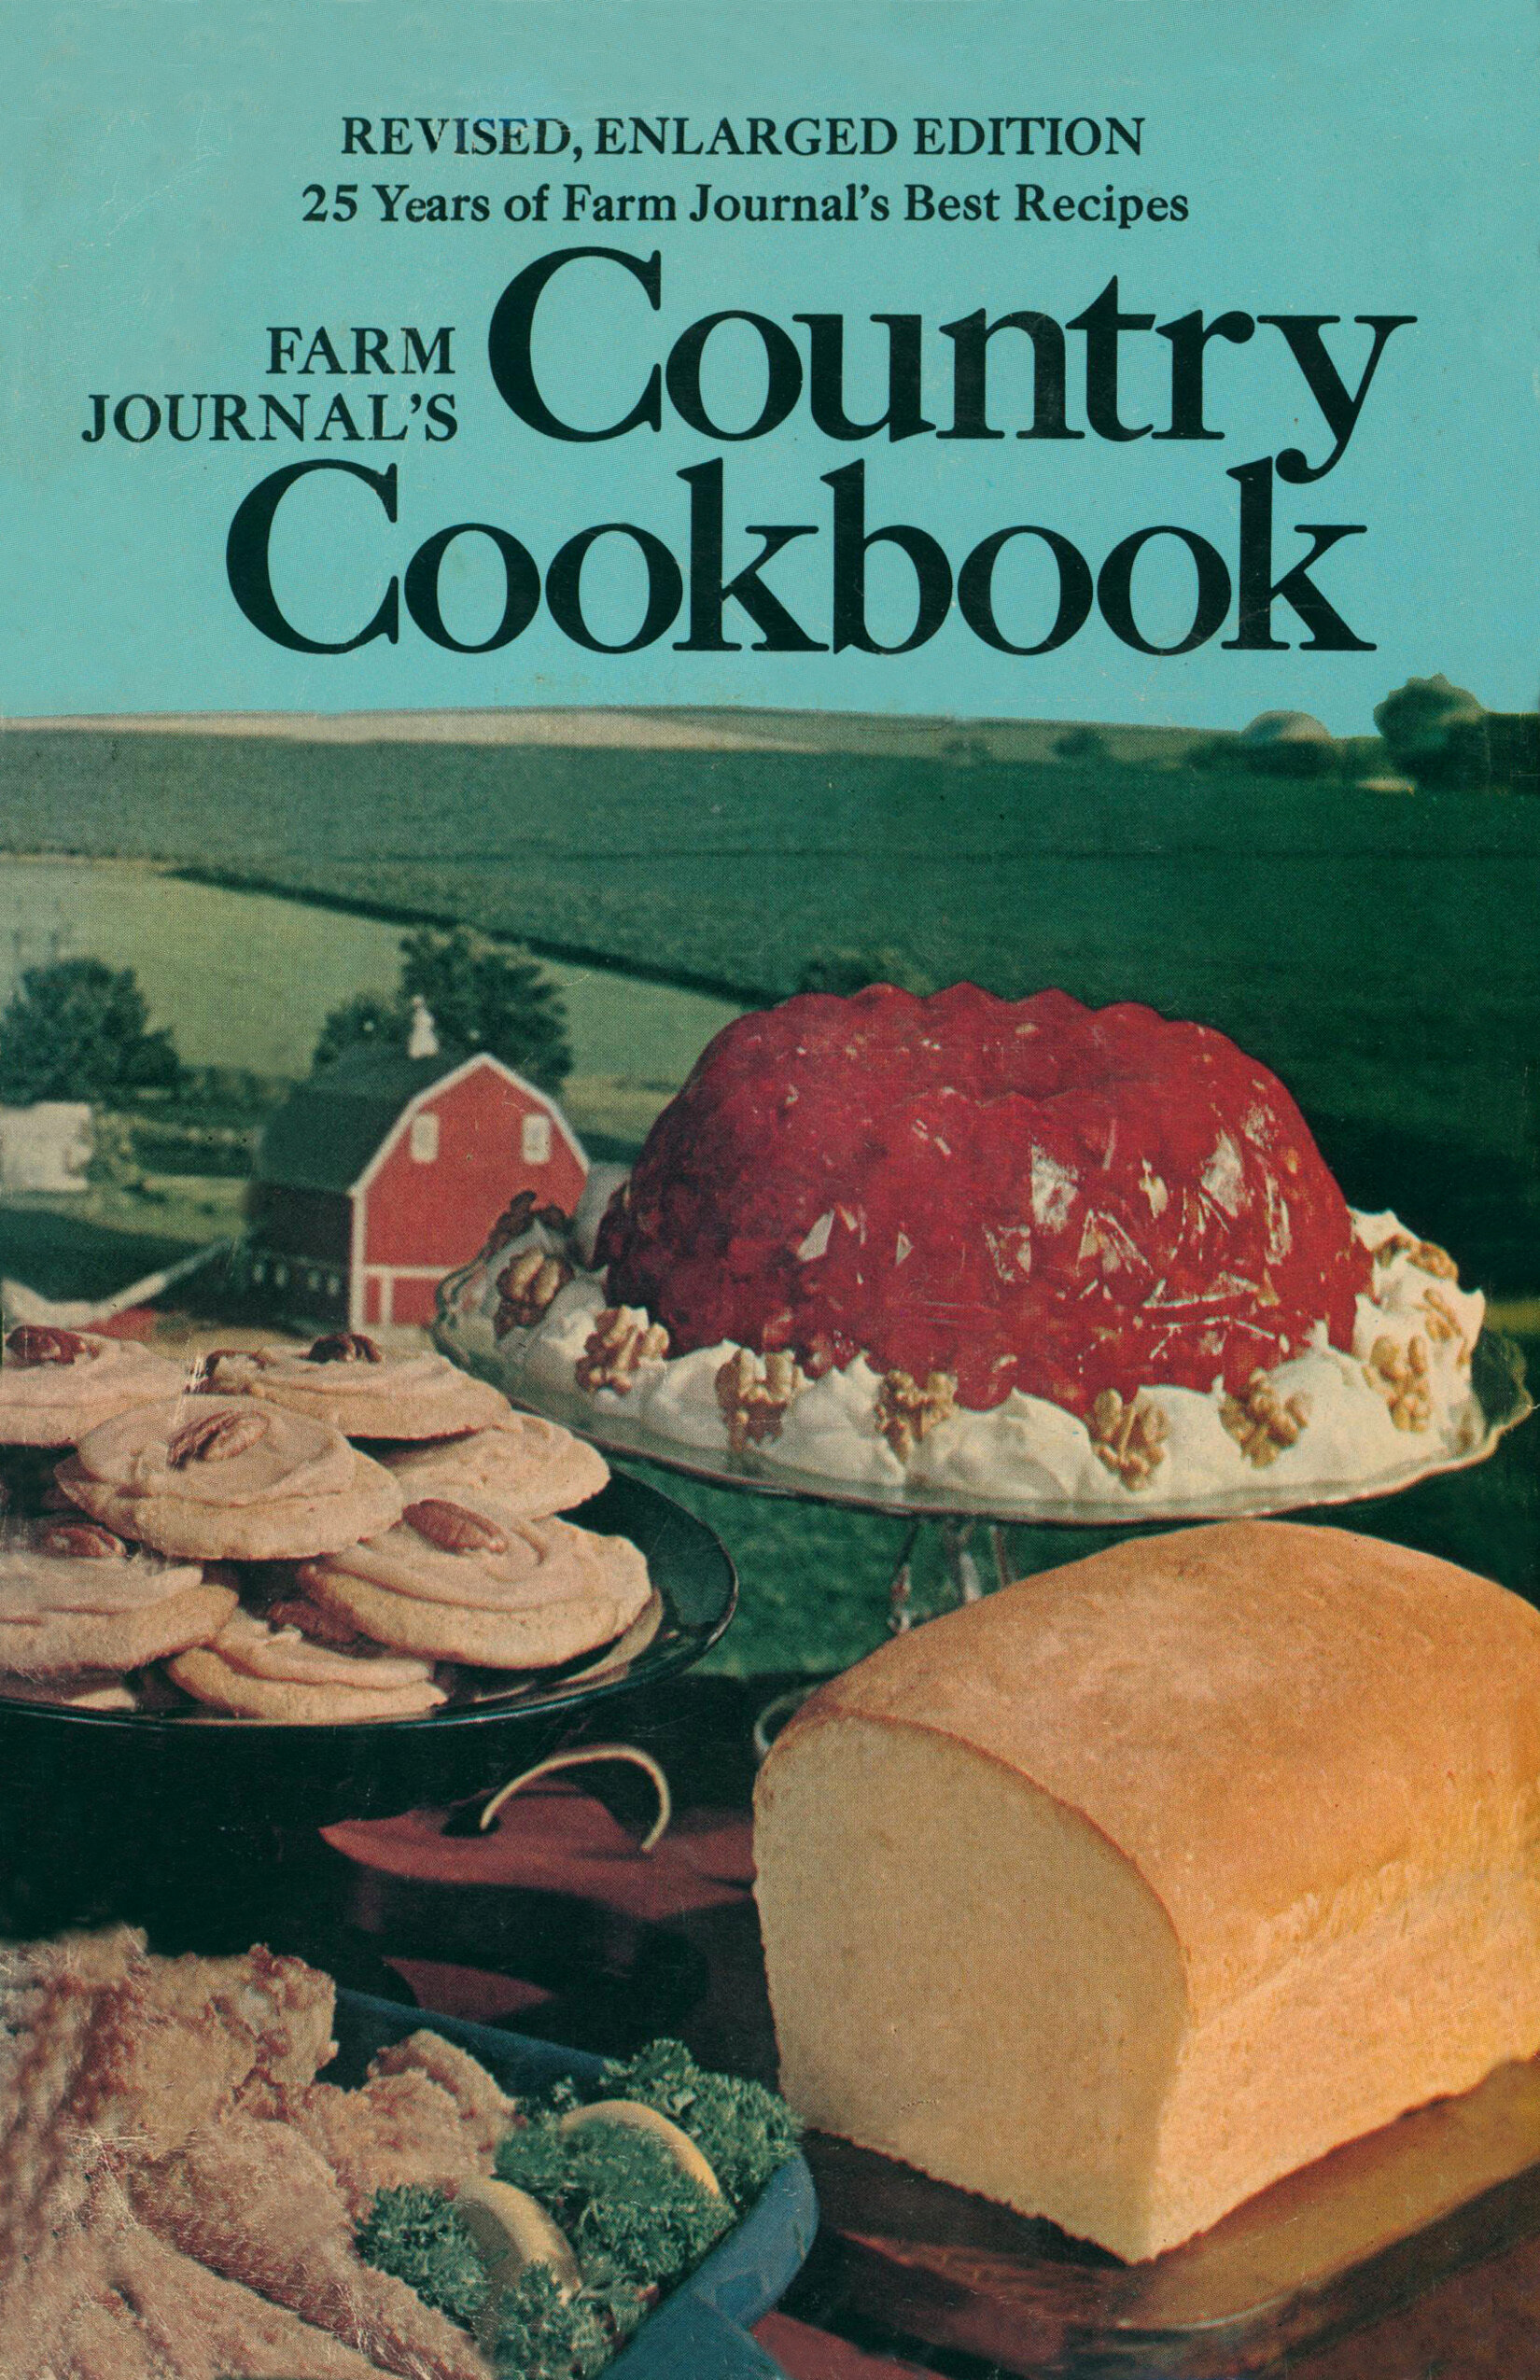 Behind The Cookbook: Farm Journal's Country Cookbook